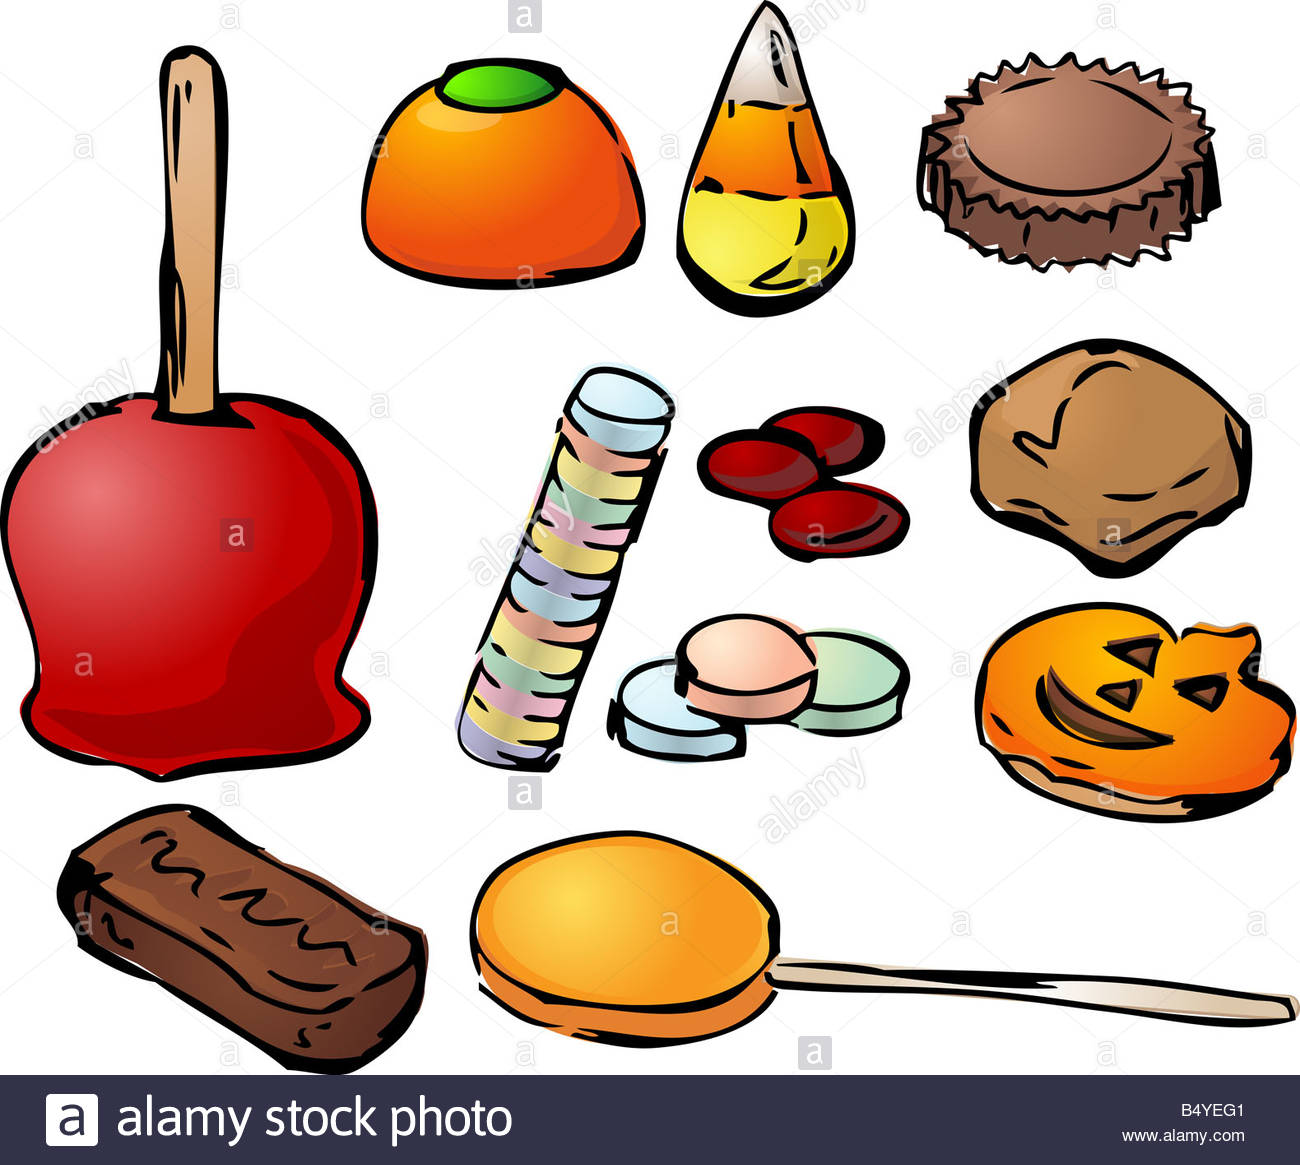 Halloween sweets candy assorted illustration icons clipart Stock.